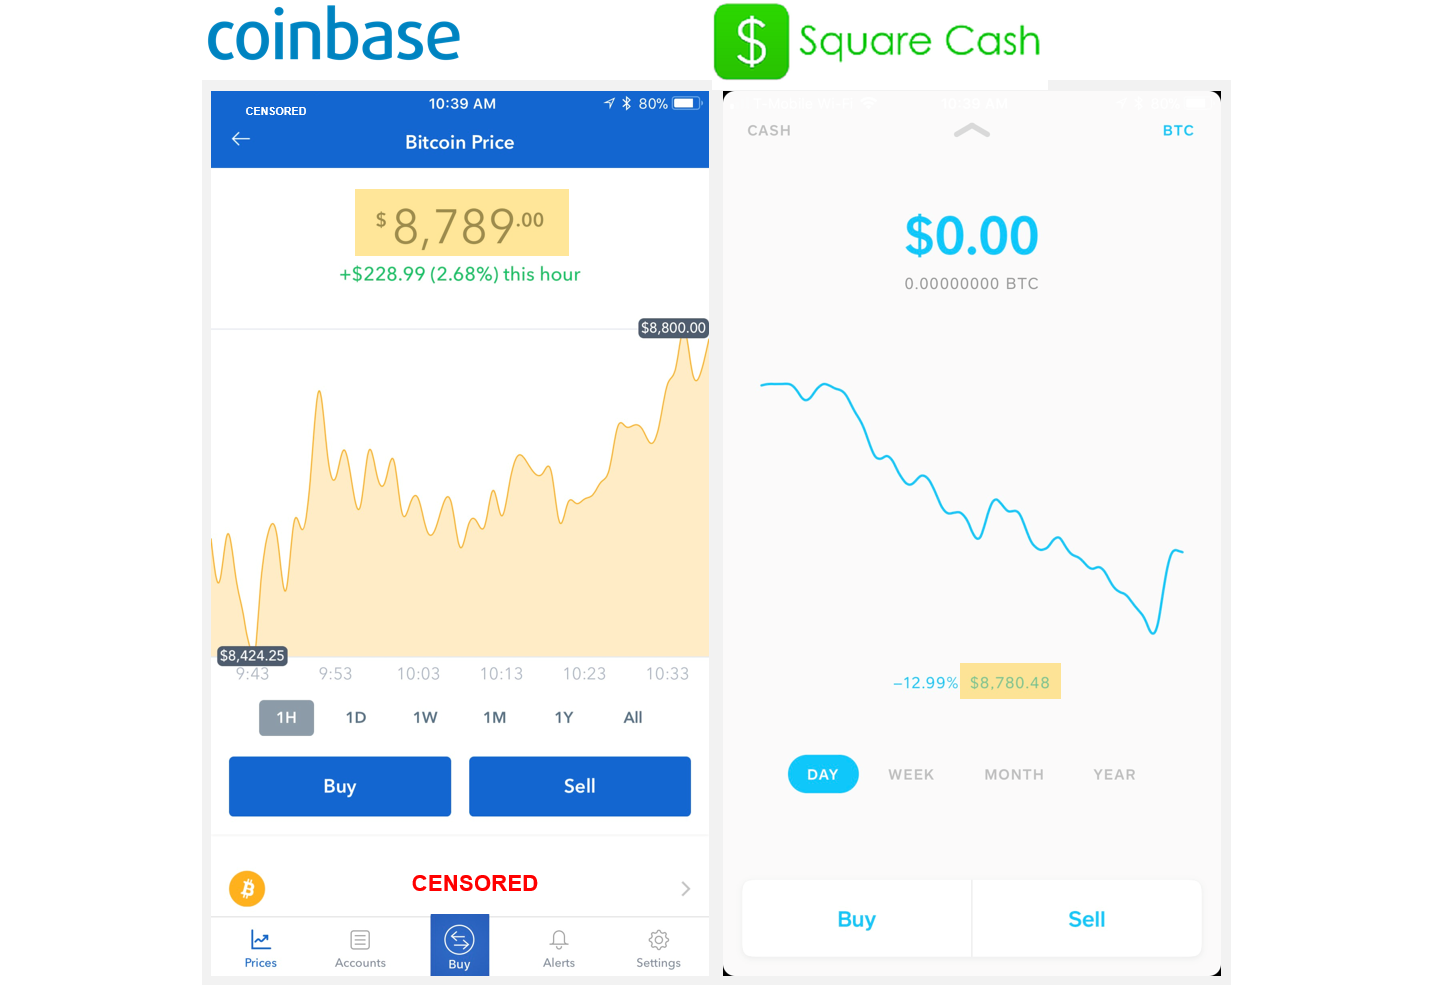 I got 23 extra bitcoin with square cash vs coinbase coinbase and square cash have comparable market rates ccuart Choice Image